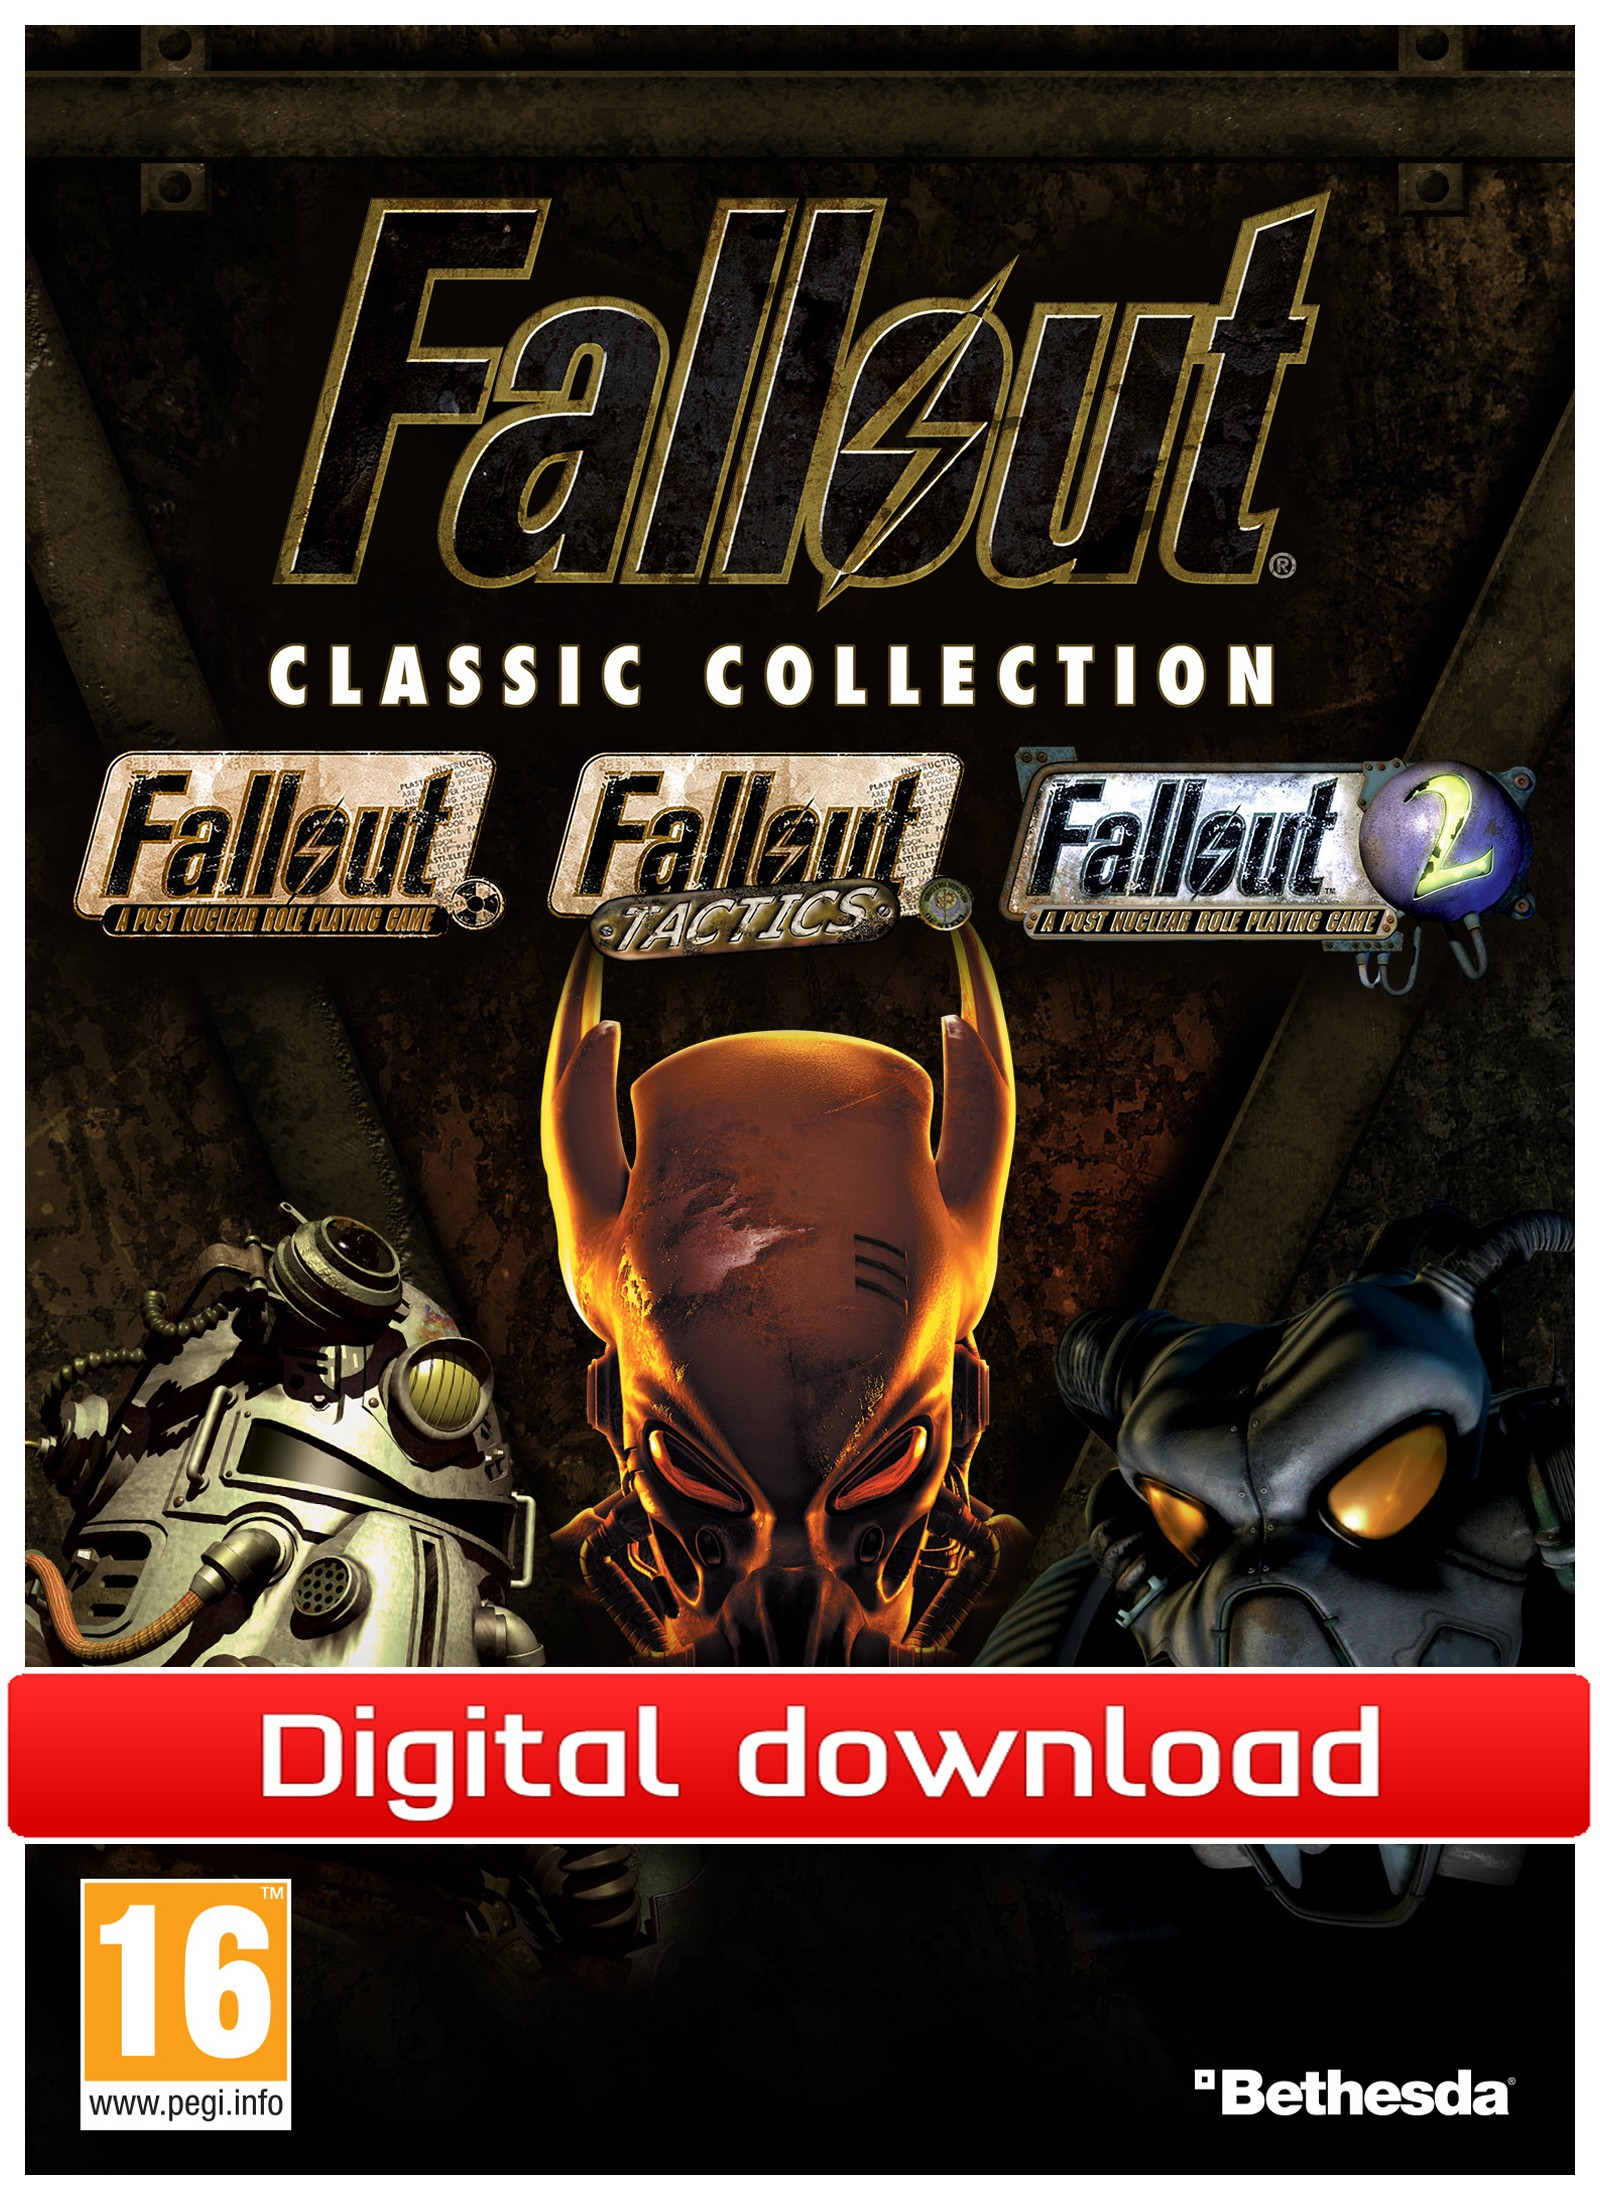 35372 : Fallout Classic Collection (PC nedlastning)